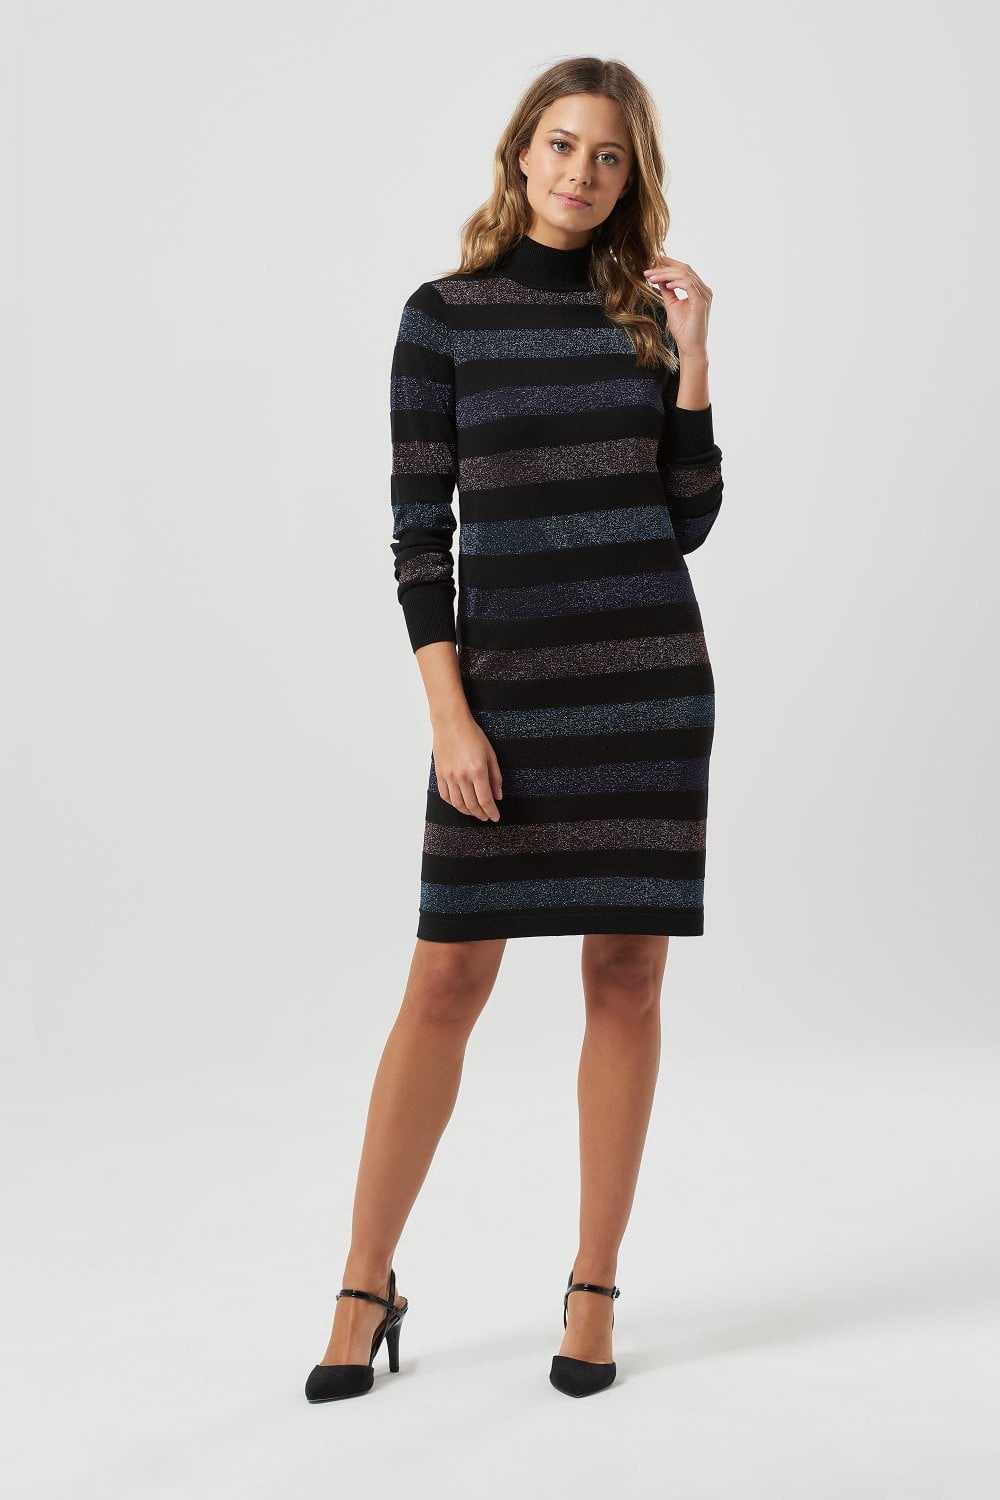 Sabrina Lurex Stripe Knit Dress by Sugarhill Brighton